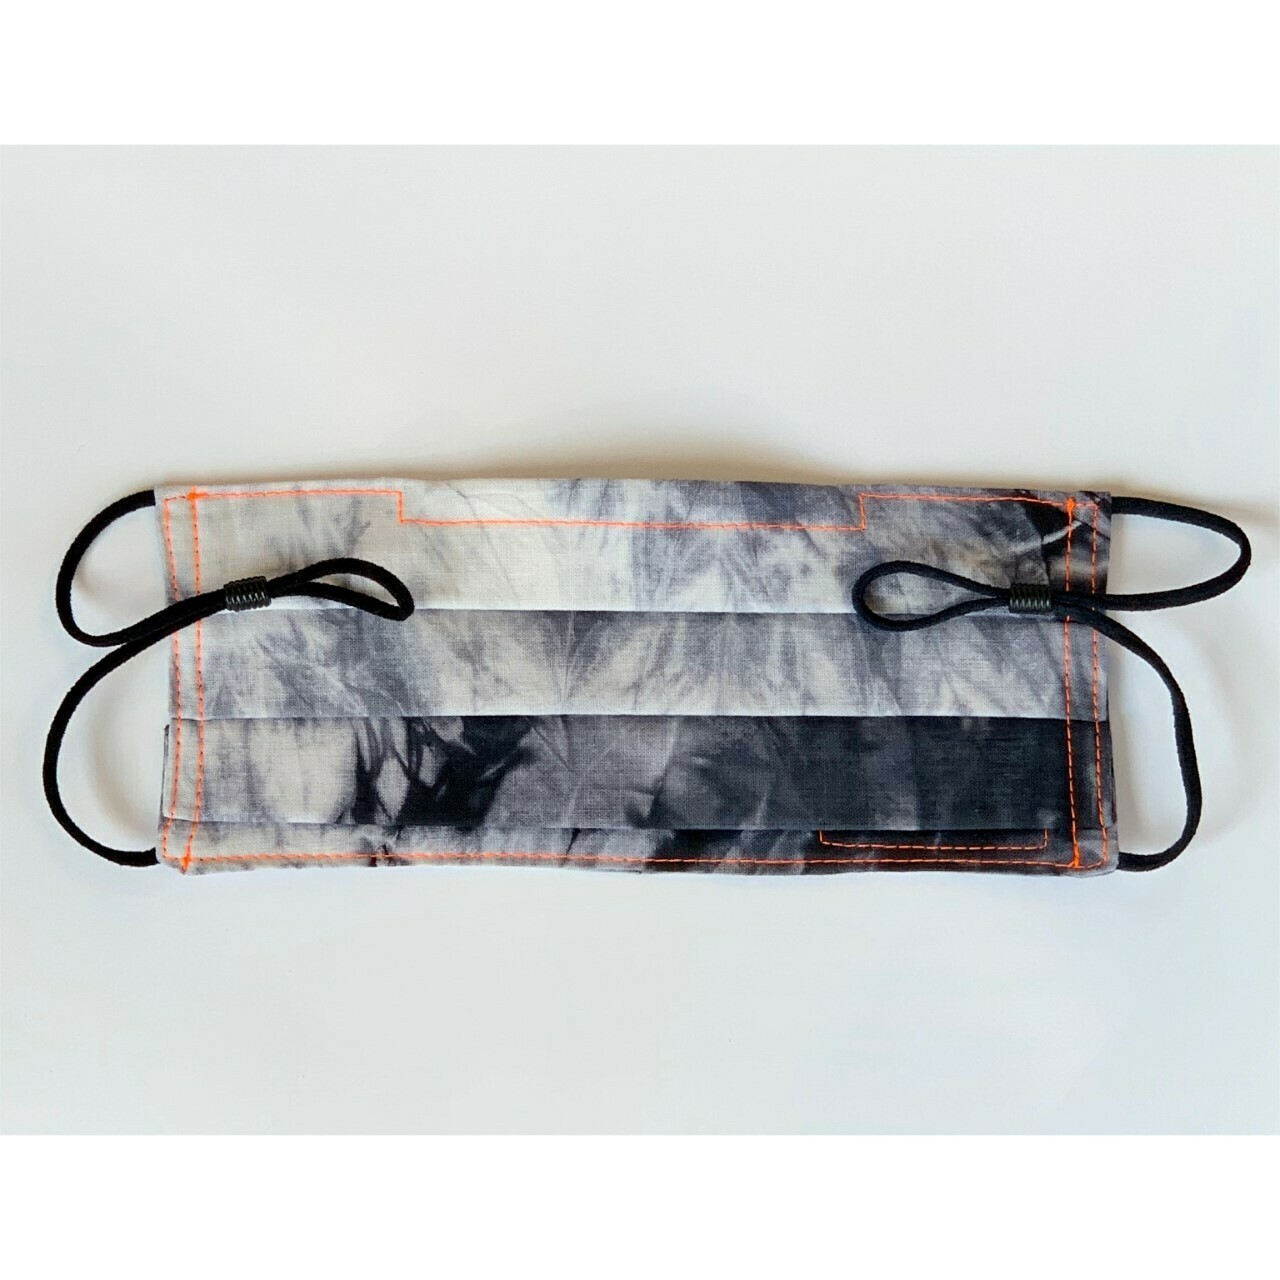 APD Black Tie Dye Surgical Style Mask